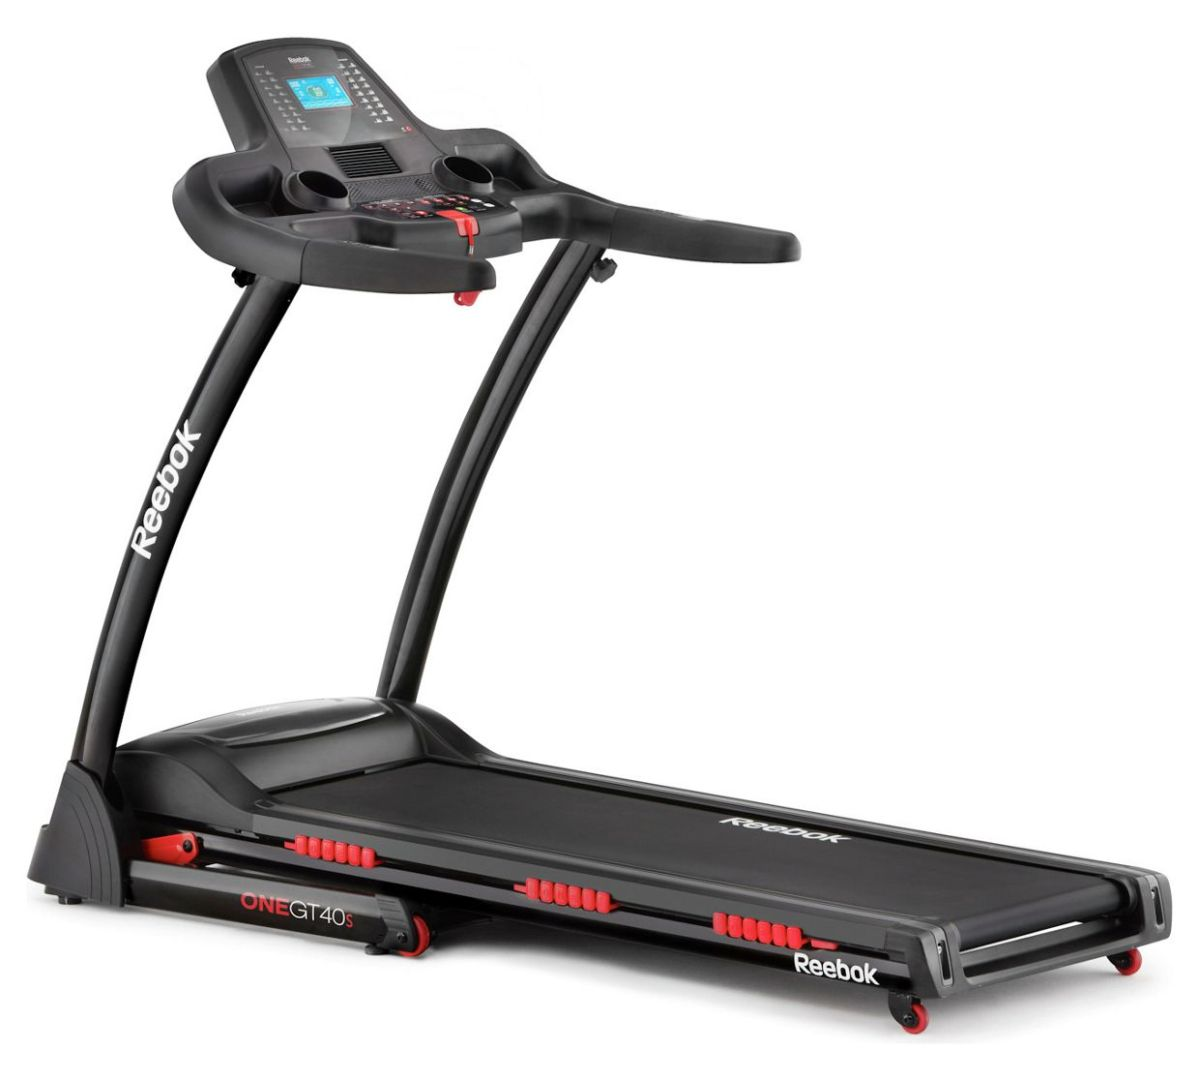 Save 63% On Reebok One GT40S Treadmill, Down From £1099.99